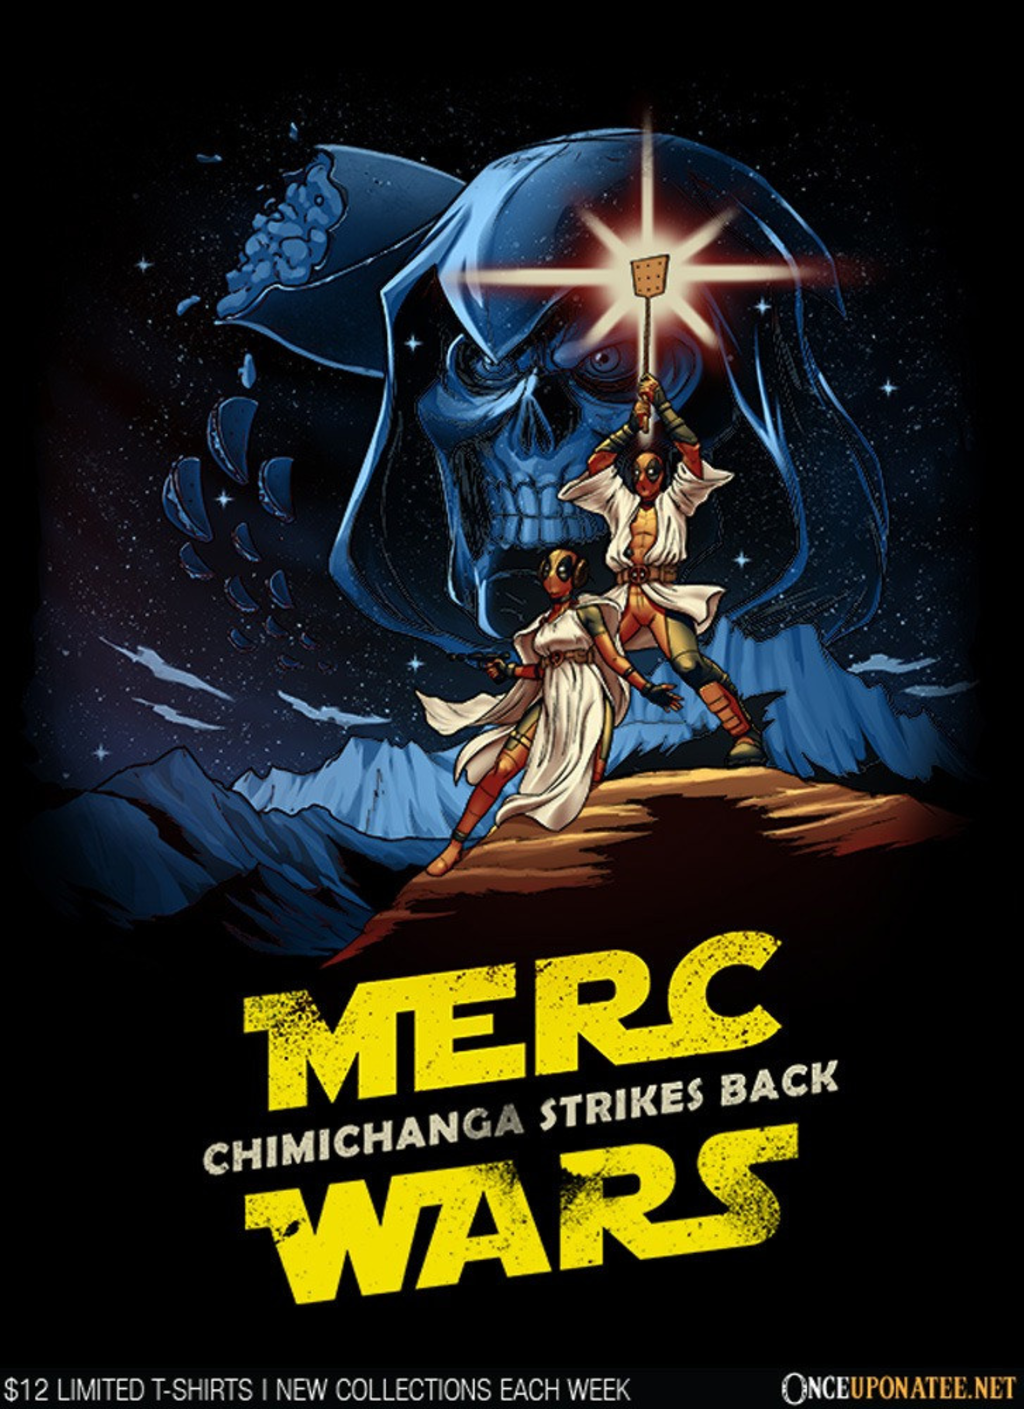 Once Upon a Tee: Chimichanga Wars